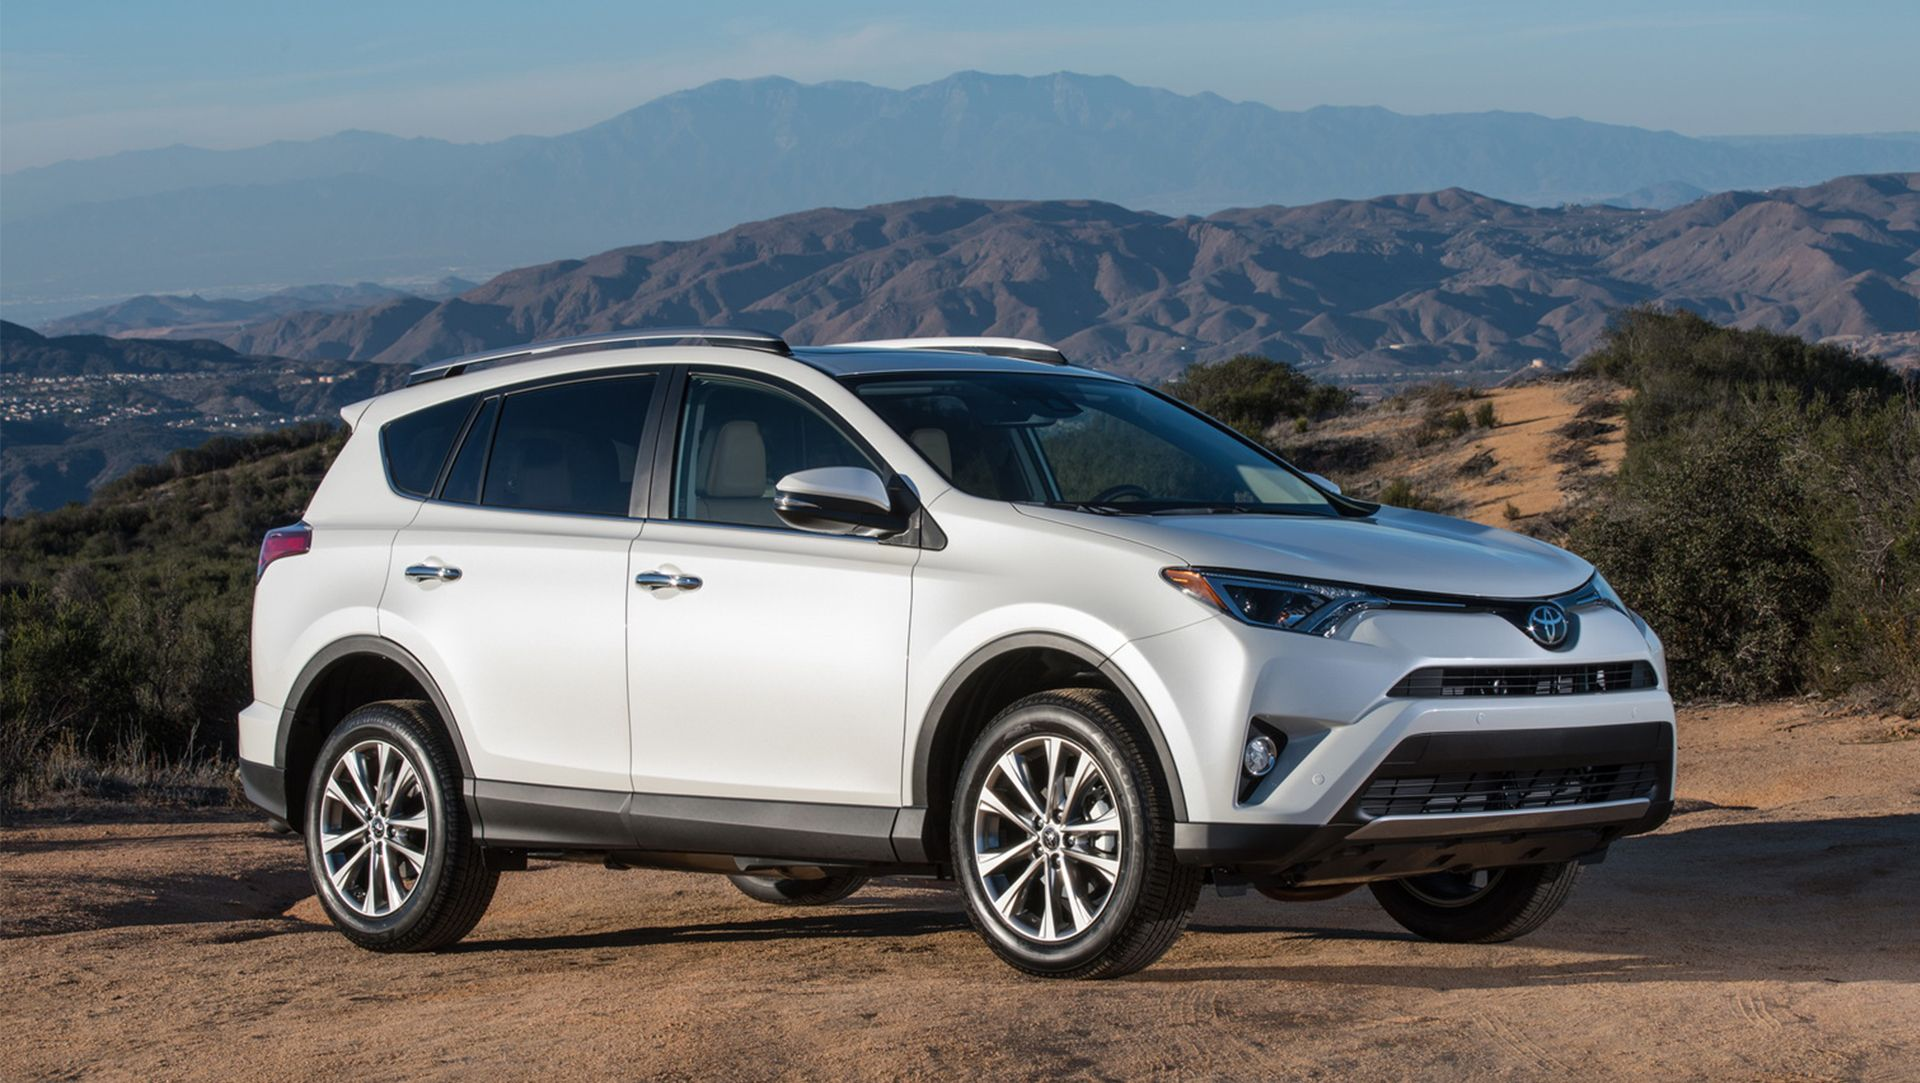 Toyota Recently Issued A Recall Concerning Certain Rav4 And Ev Suvs After Canada S Transport Ministry Said It Had Found Potential Seat Related